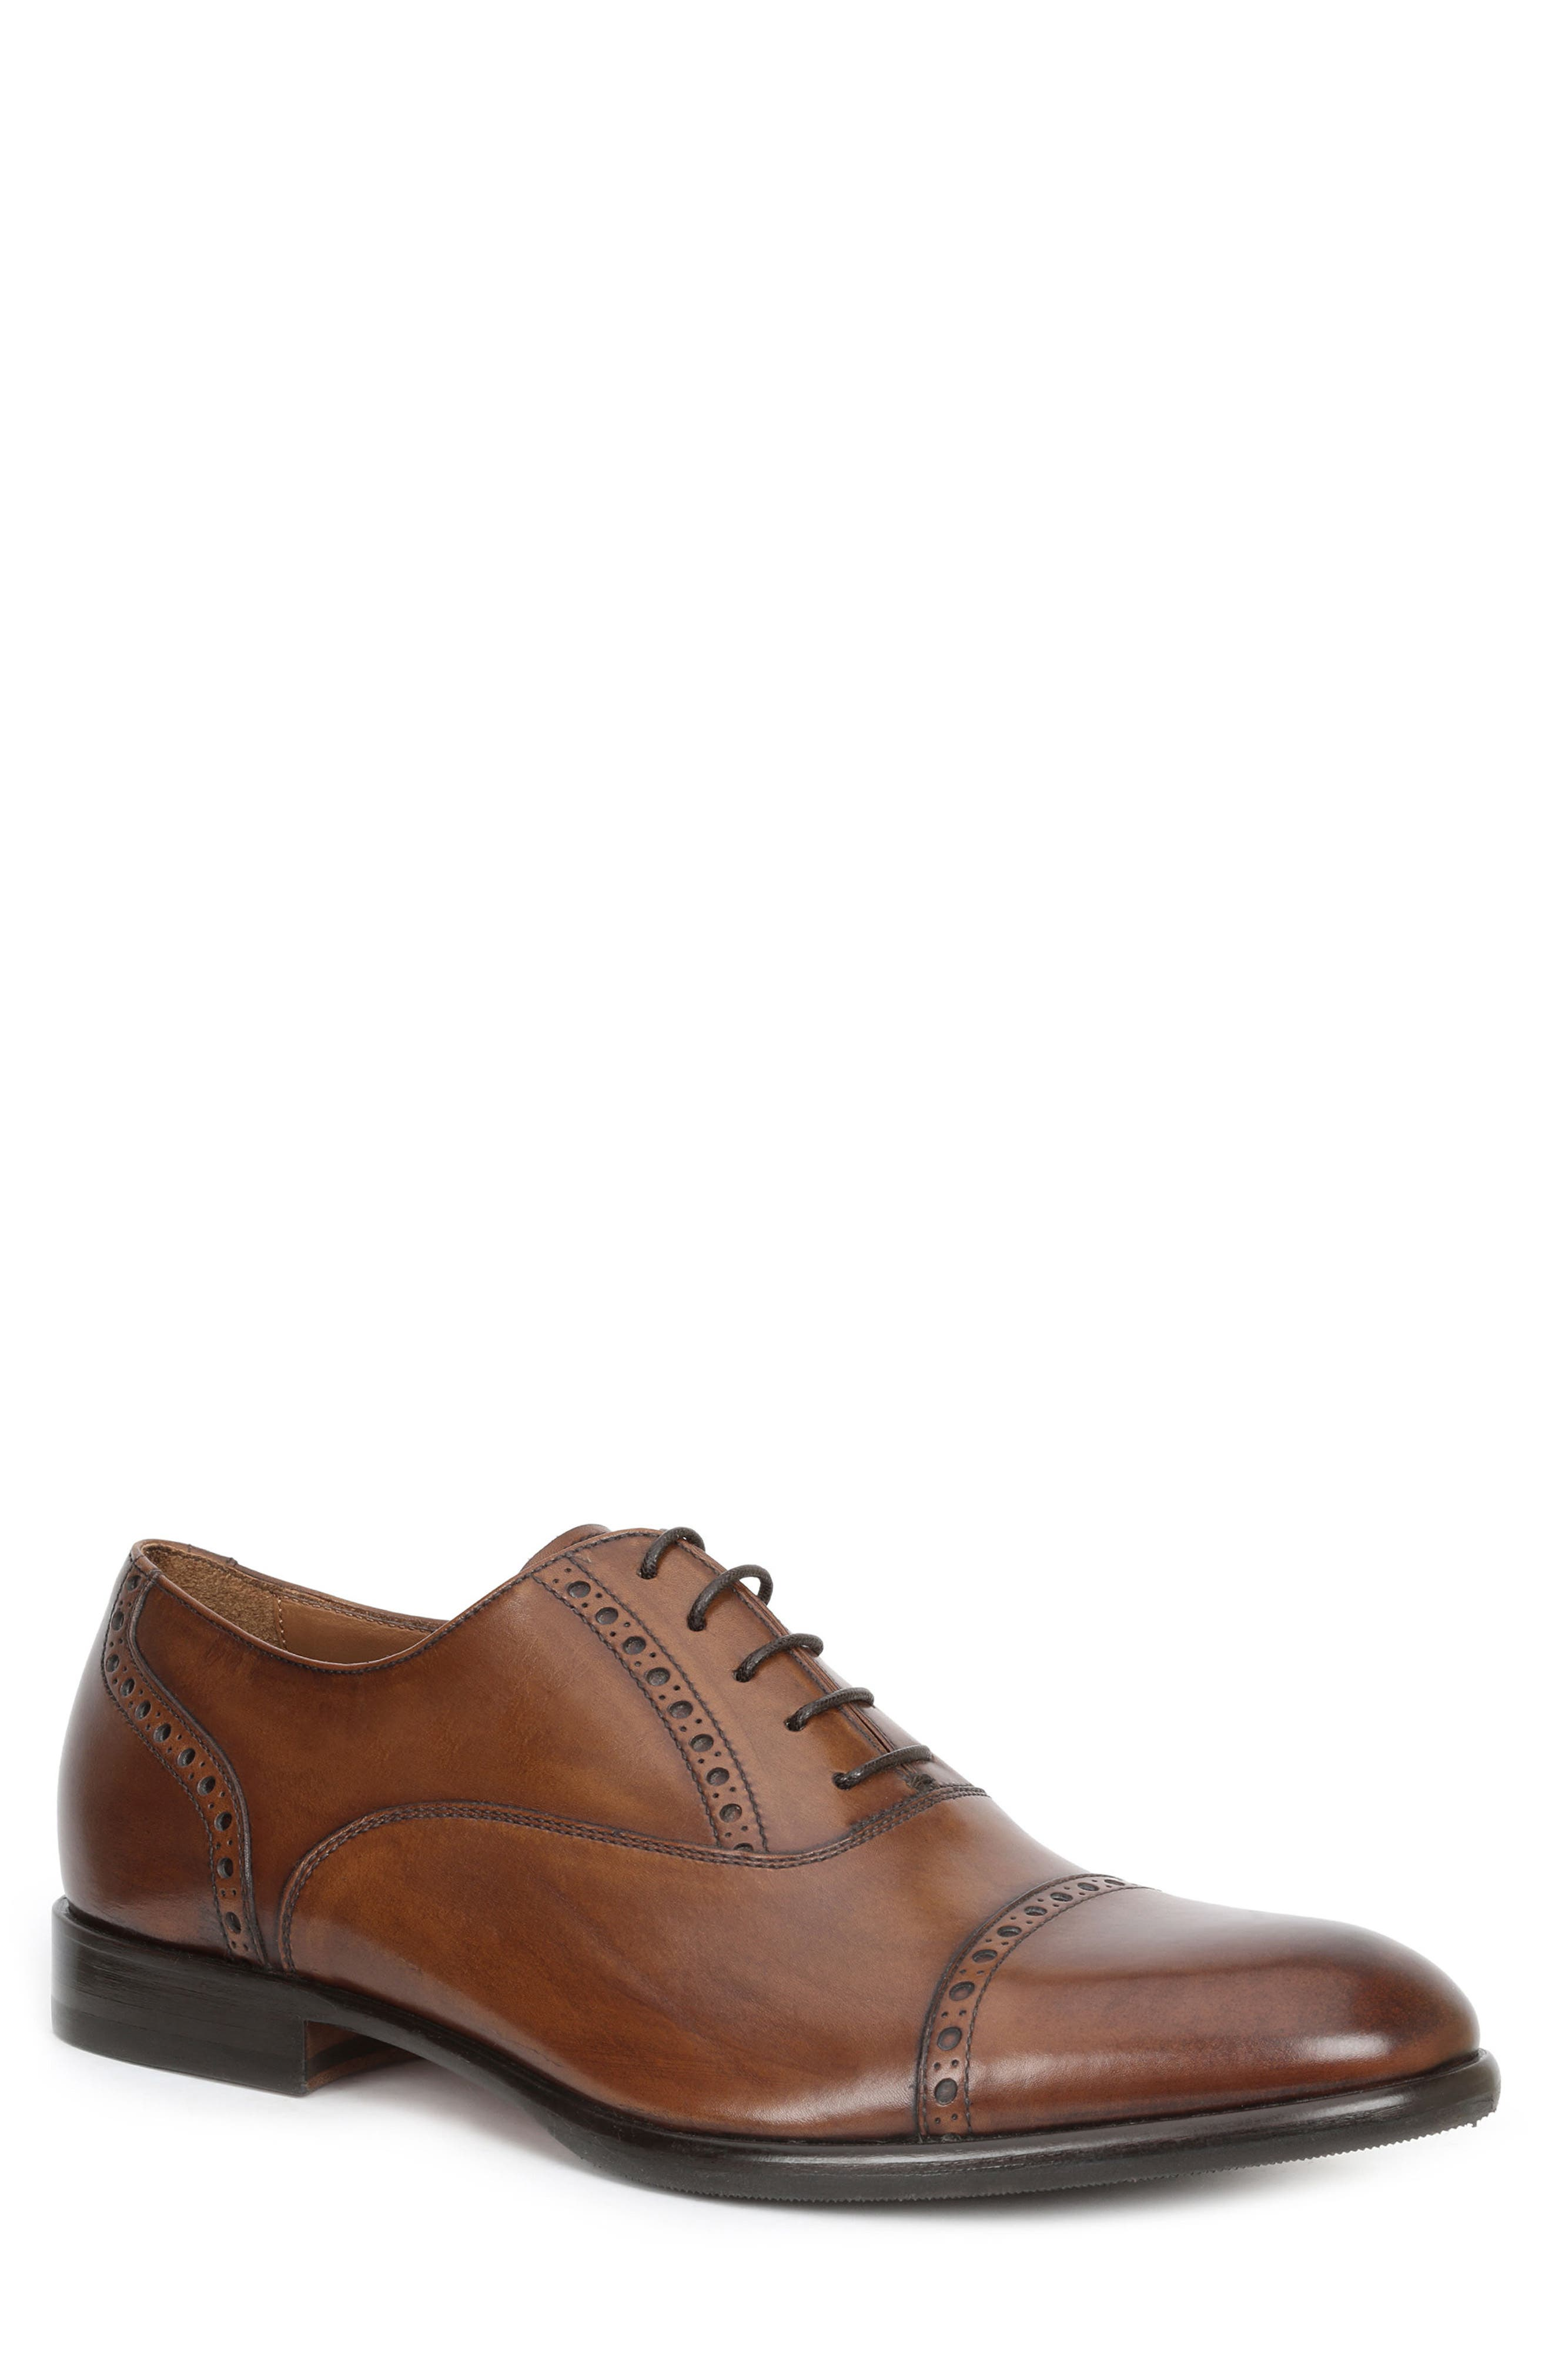 Pisa Cap Toe Oxford,                         Main,                         color, Cognac